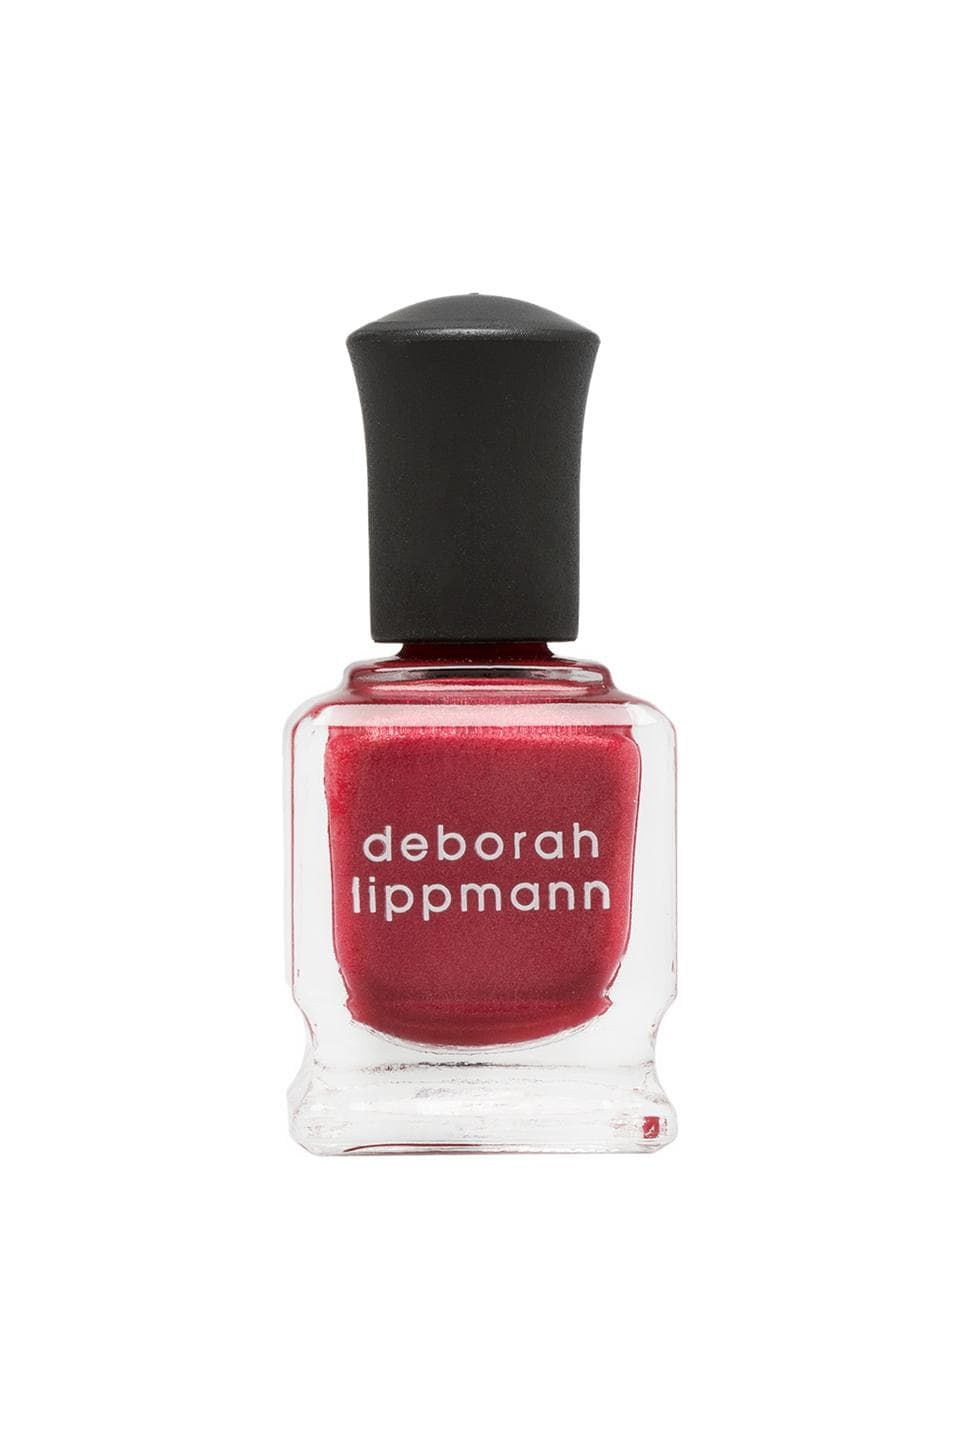 Deborah Lippmann Silky Matte Finish Nail Lacquer in Red Silk Boxers